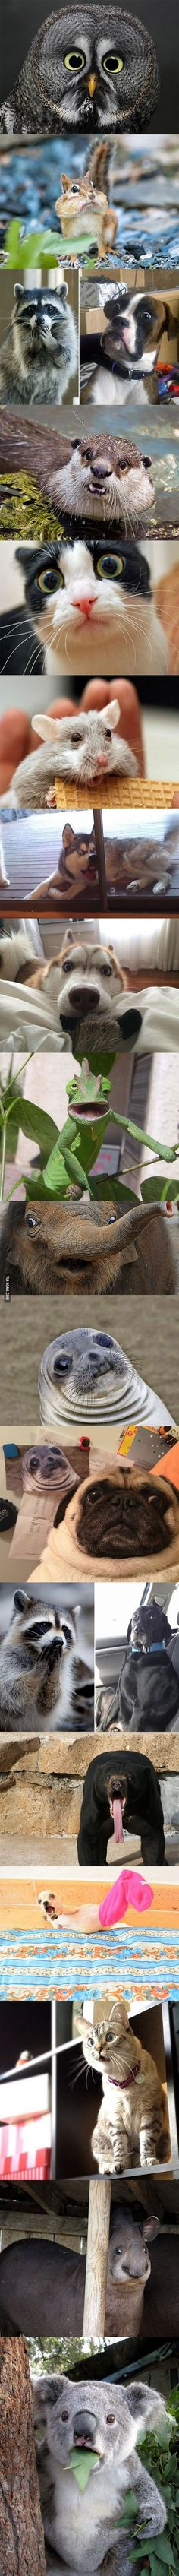 Animals in complete astonishment